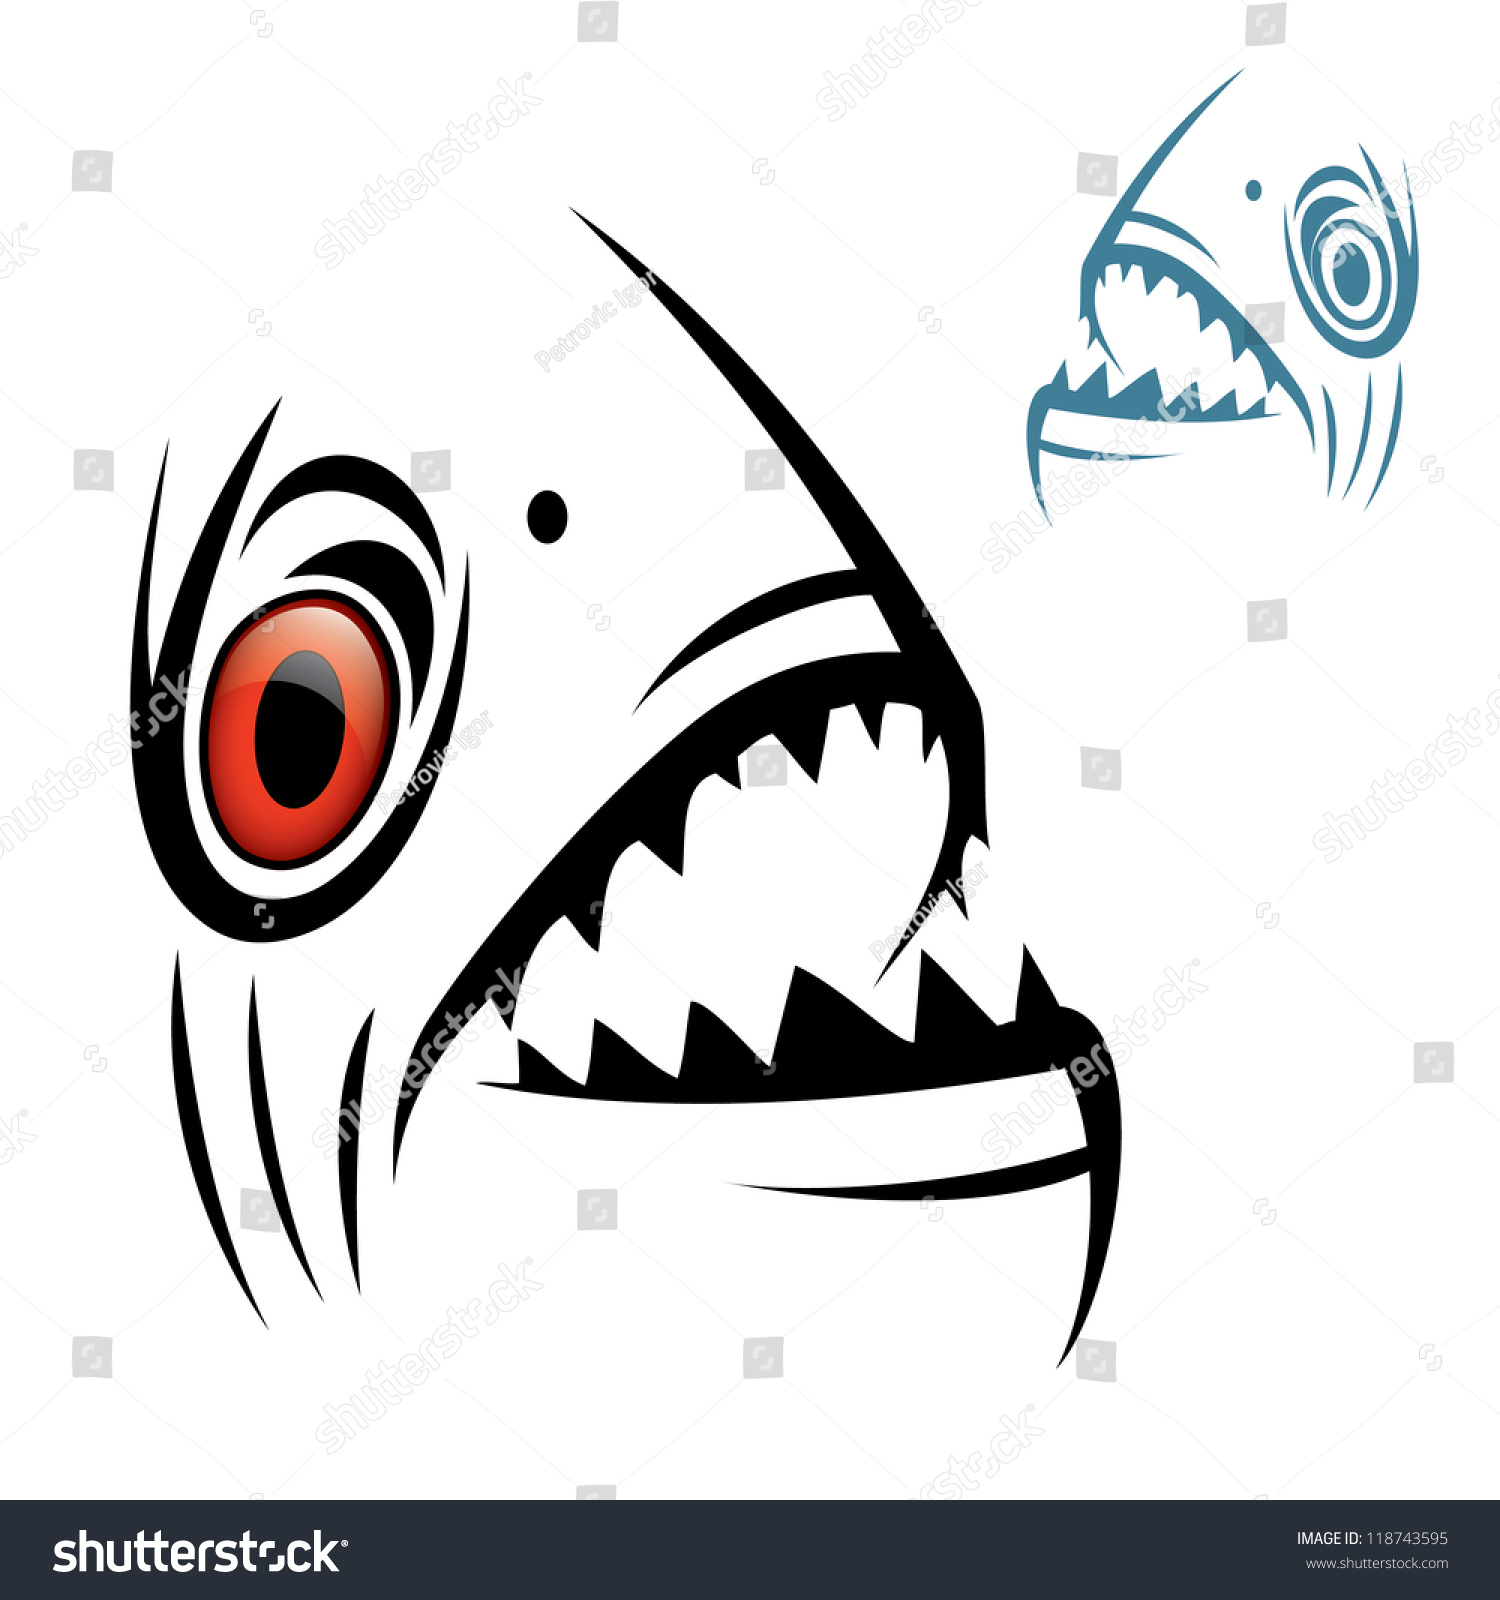 Piranha Head Vector Illustration Vector de stock118743595: Shutterstock